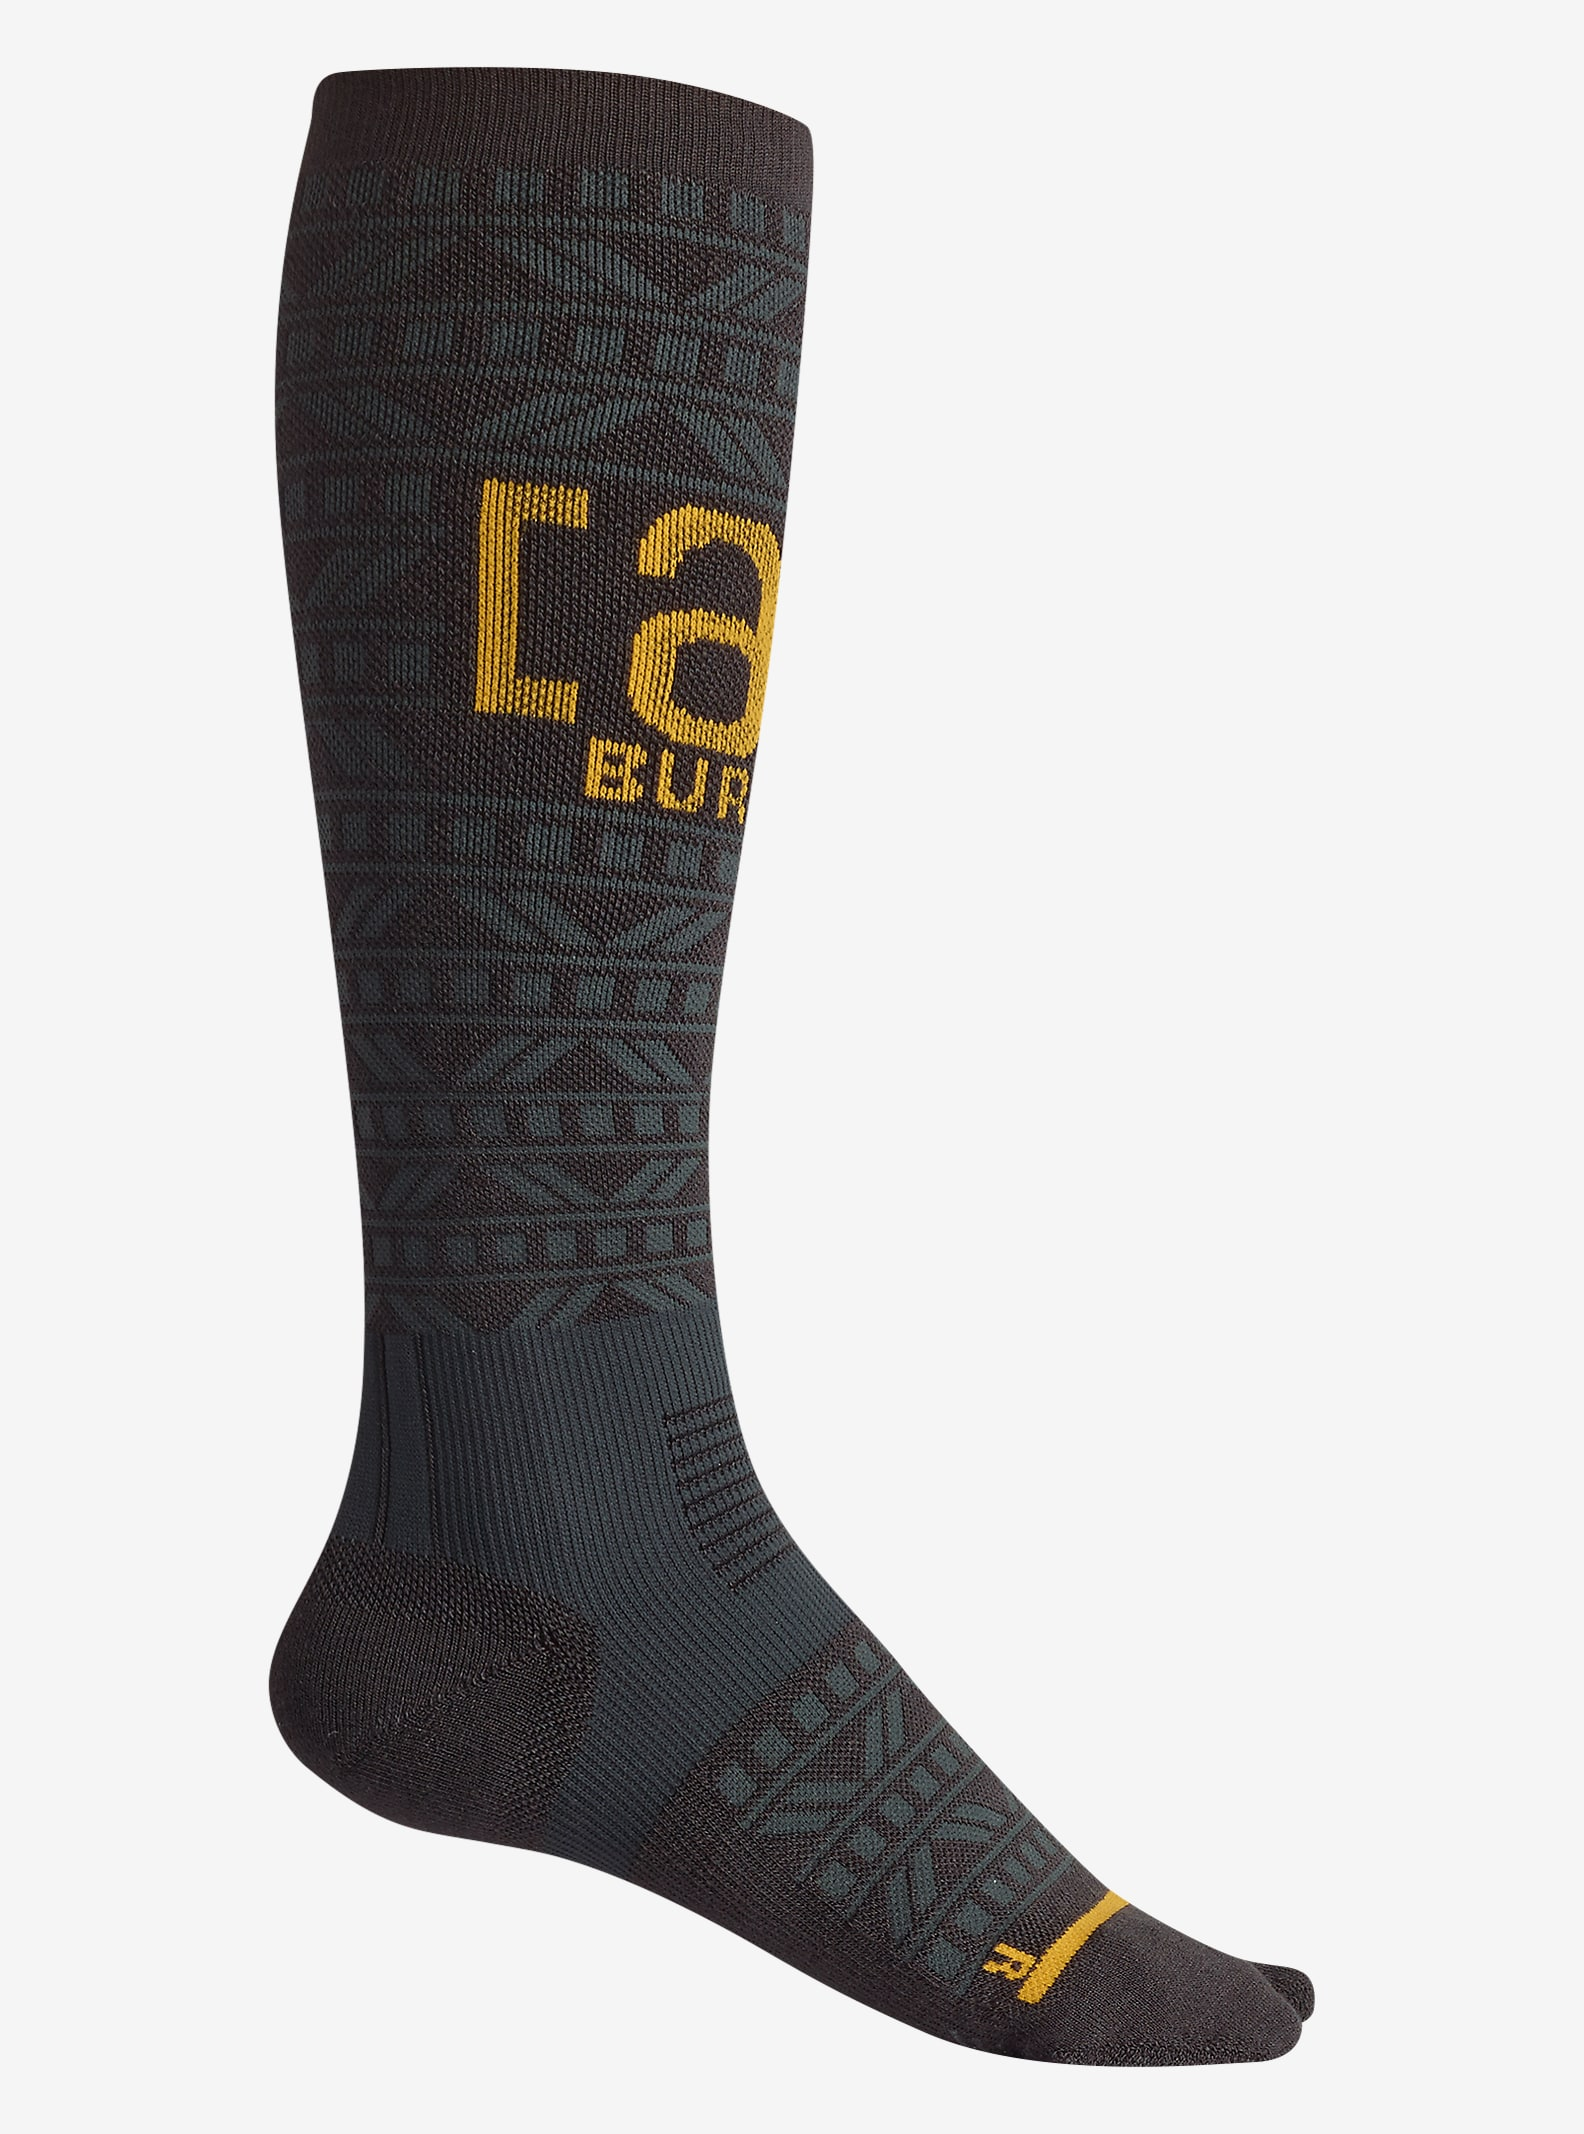 Burton [ak] Freebird Sock shown in Faded